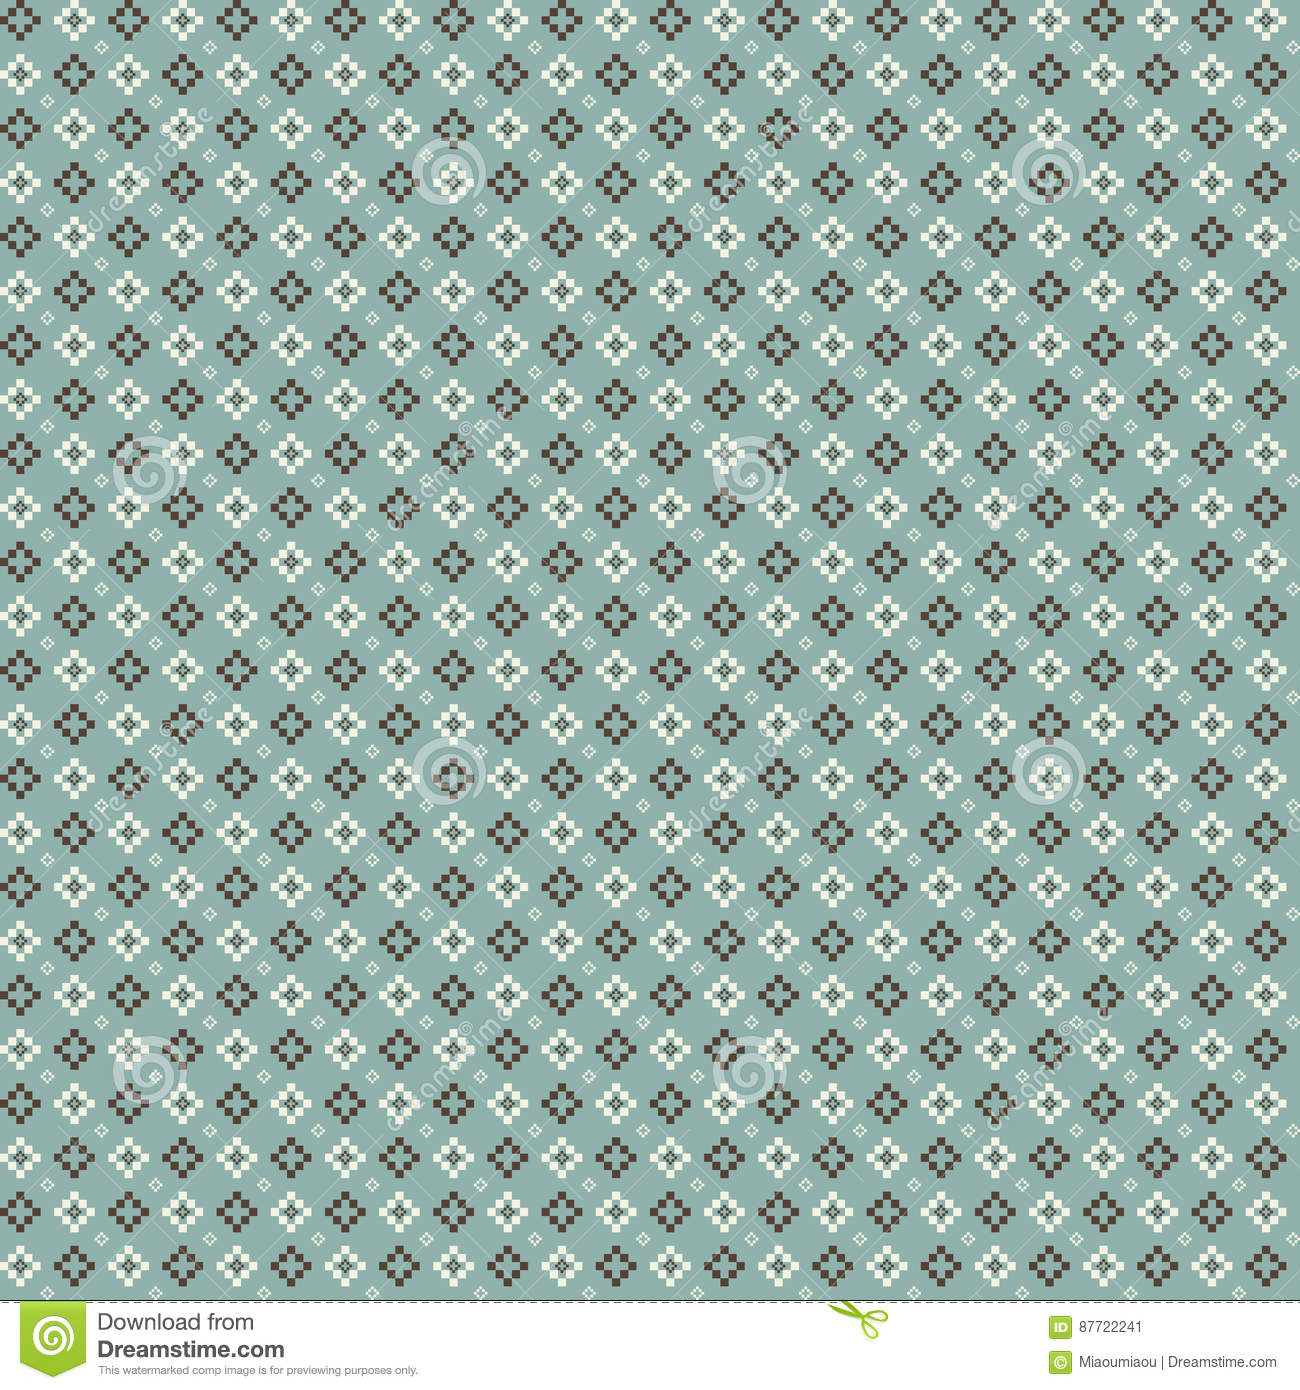 cute pixelated pattern with simple geometric shapes useful for textile and interior design - Pixelated Interior Design